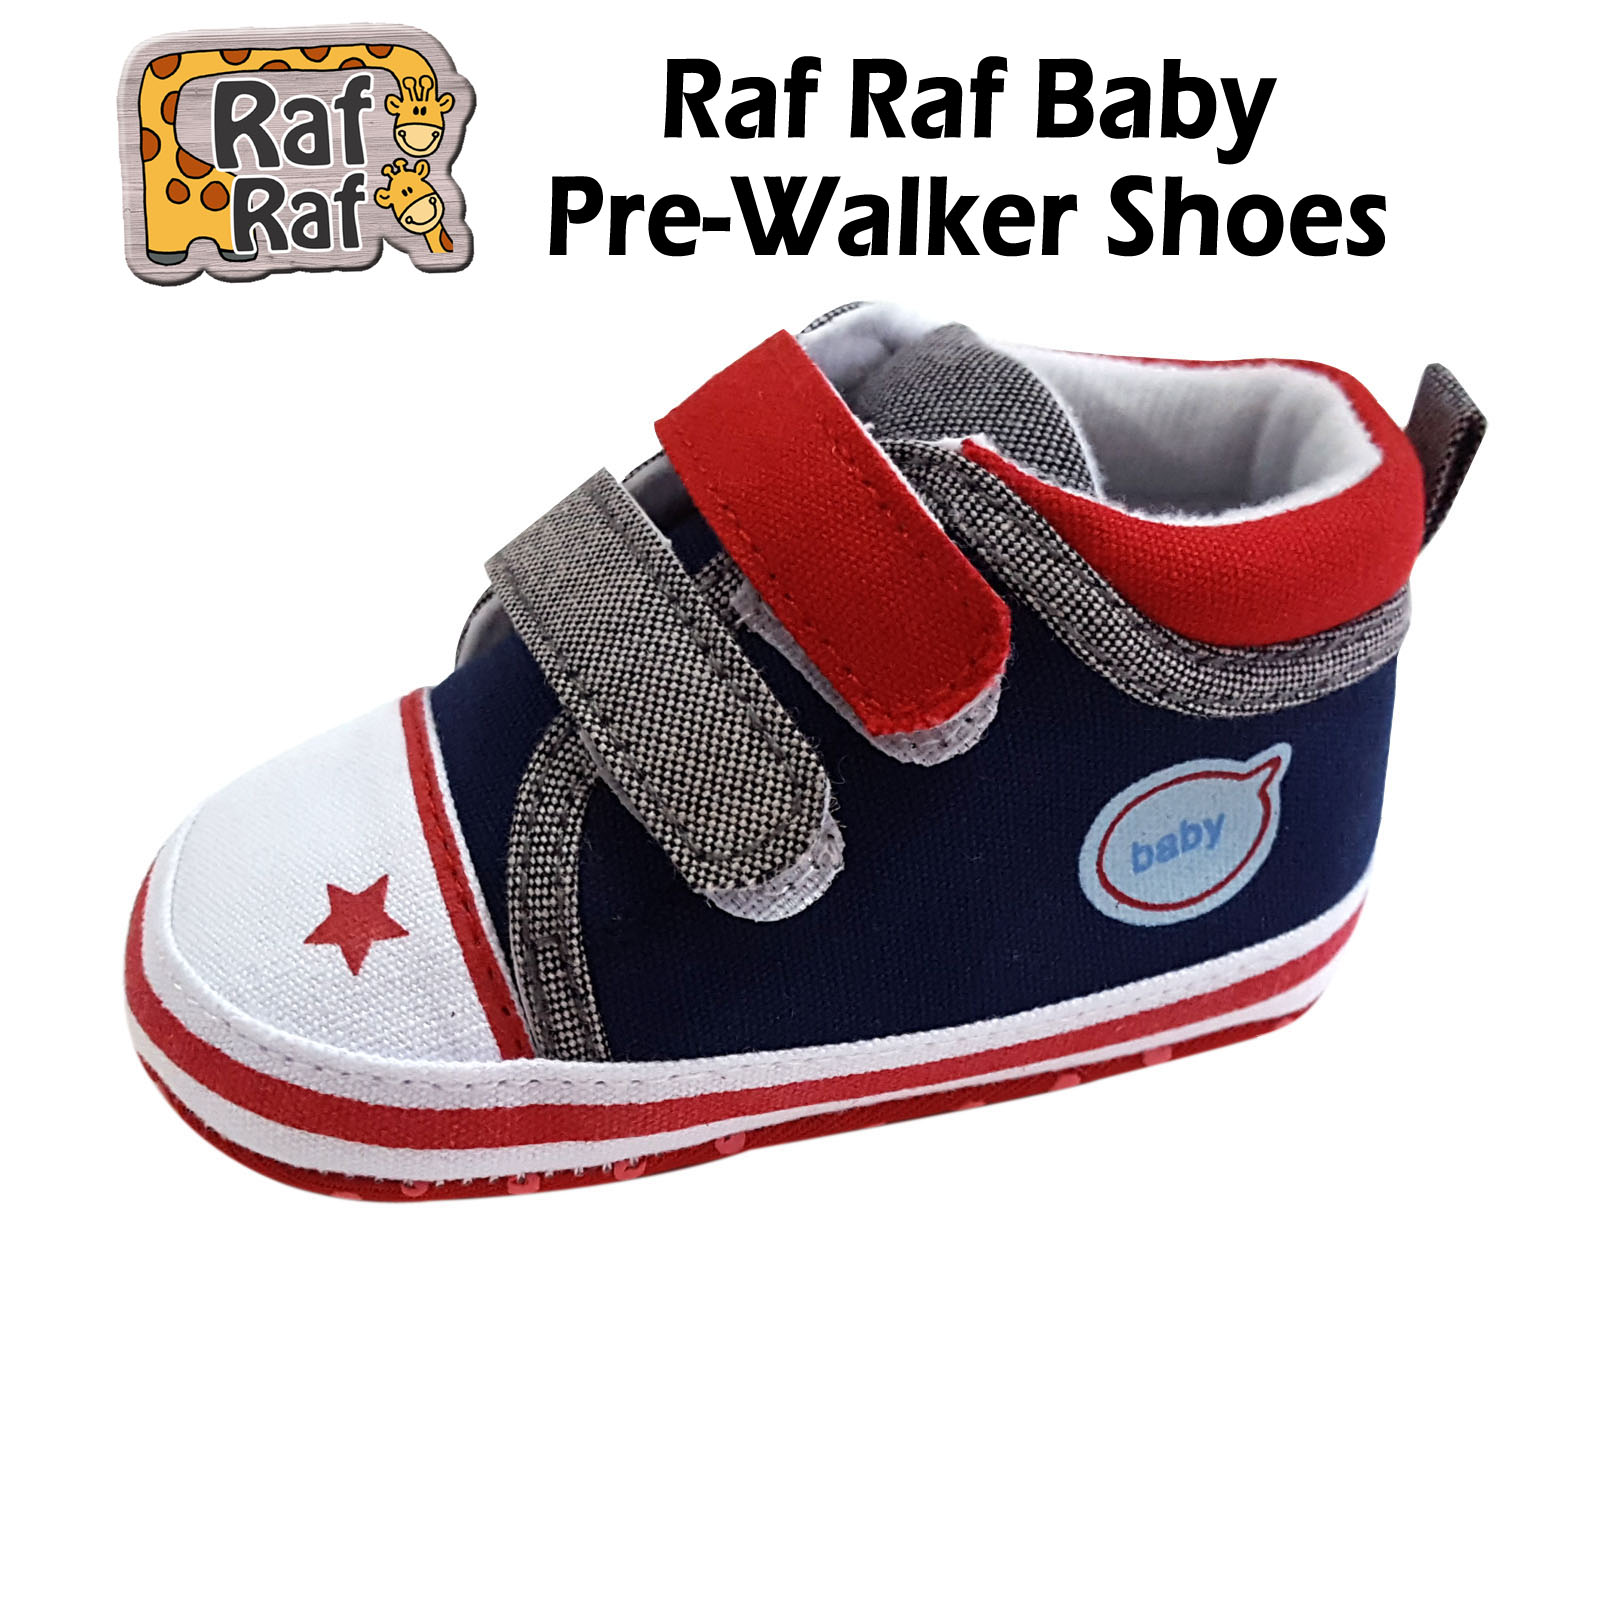 Raf Raf Soft Sole Baby Pre-Walker Shoes - 2 for $2